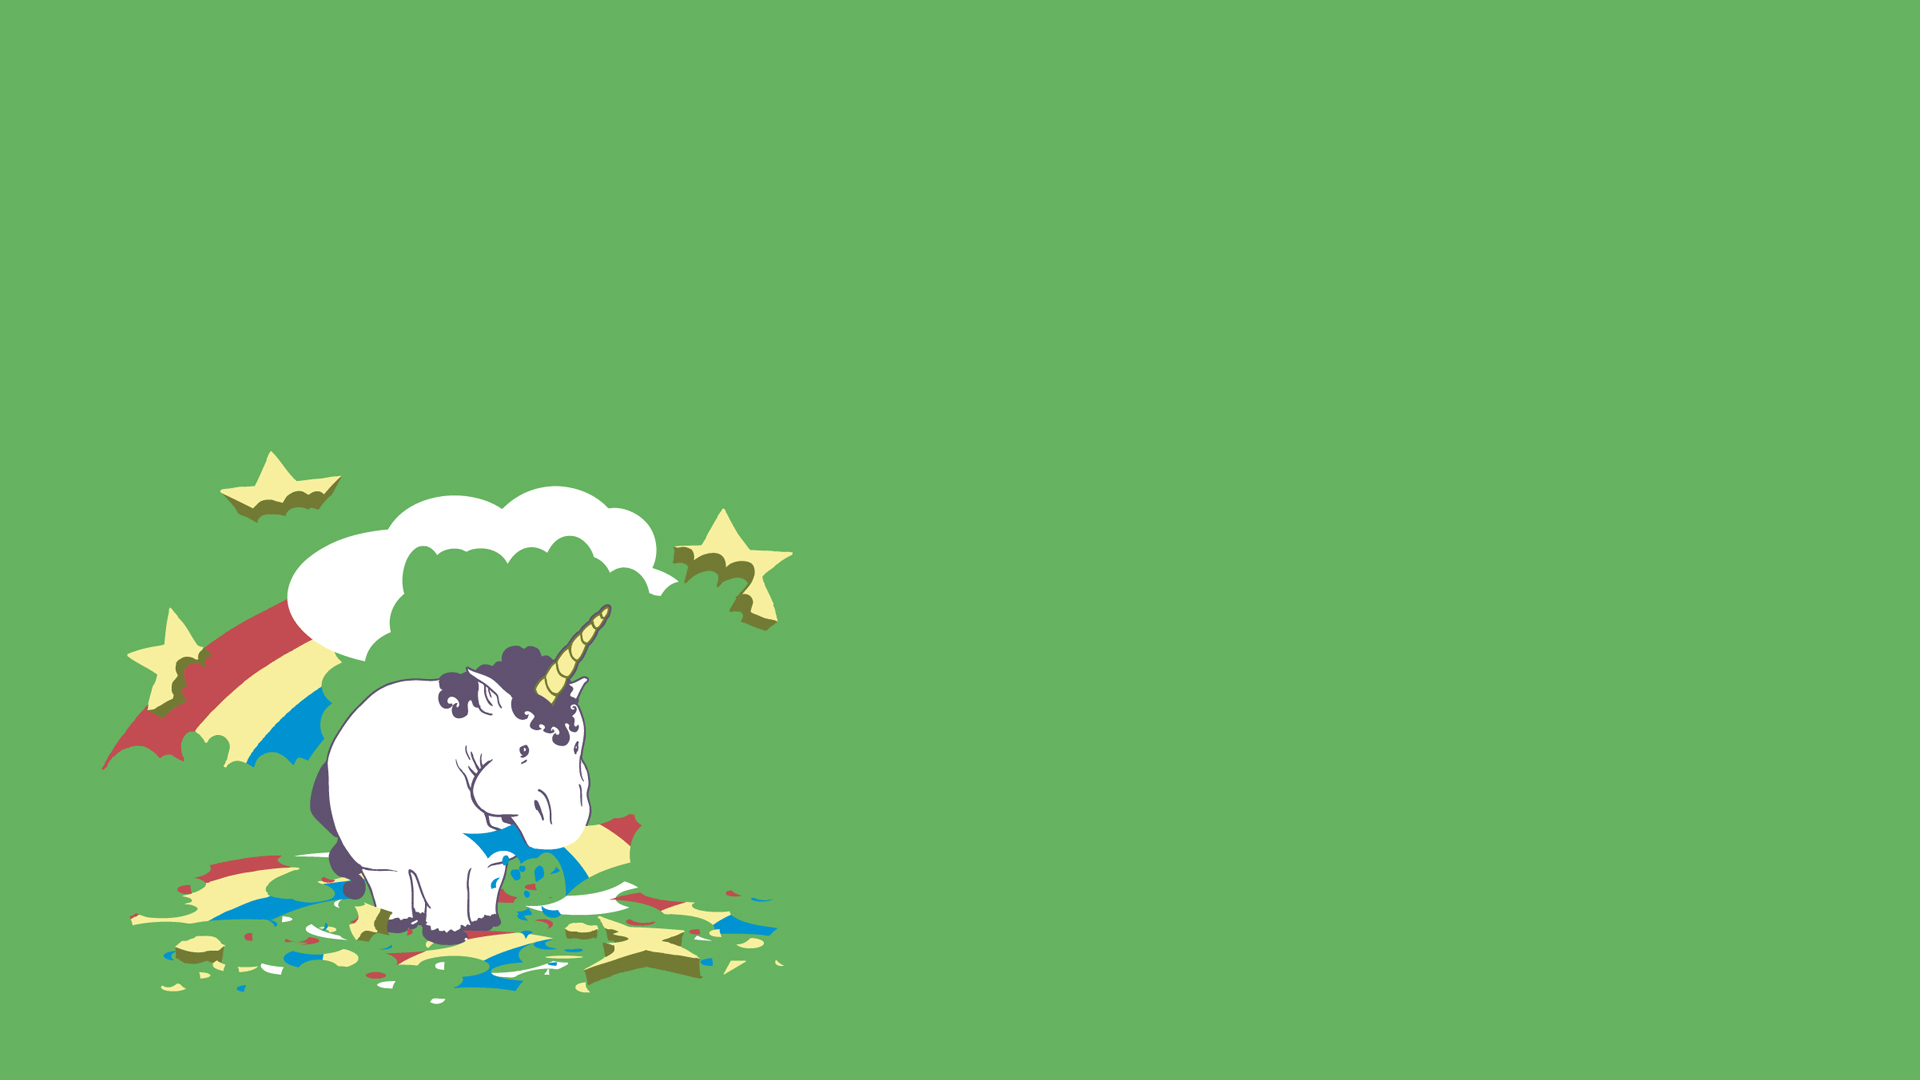 unicorn wallpapers full hd - photo #14